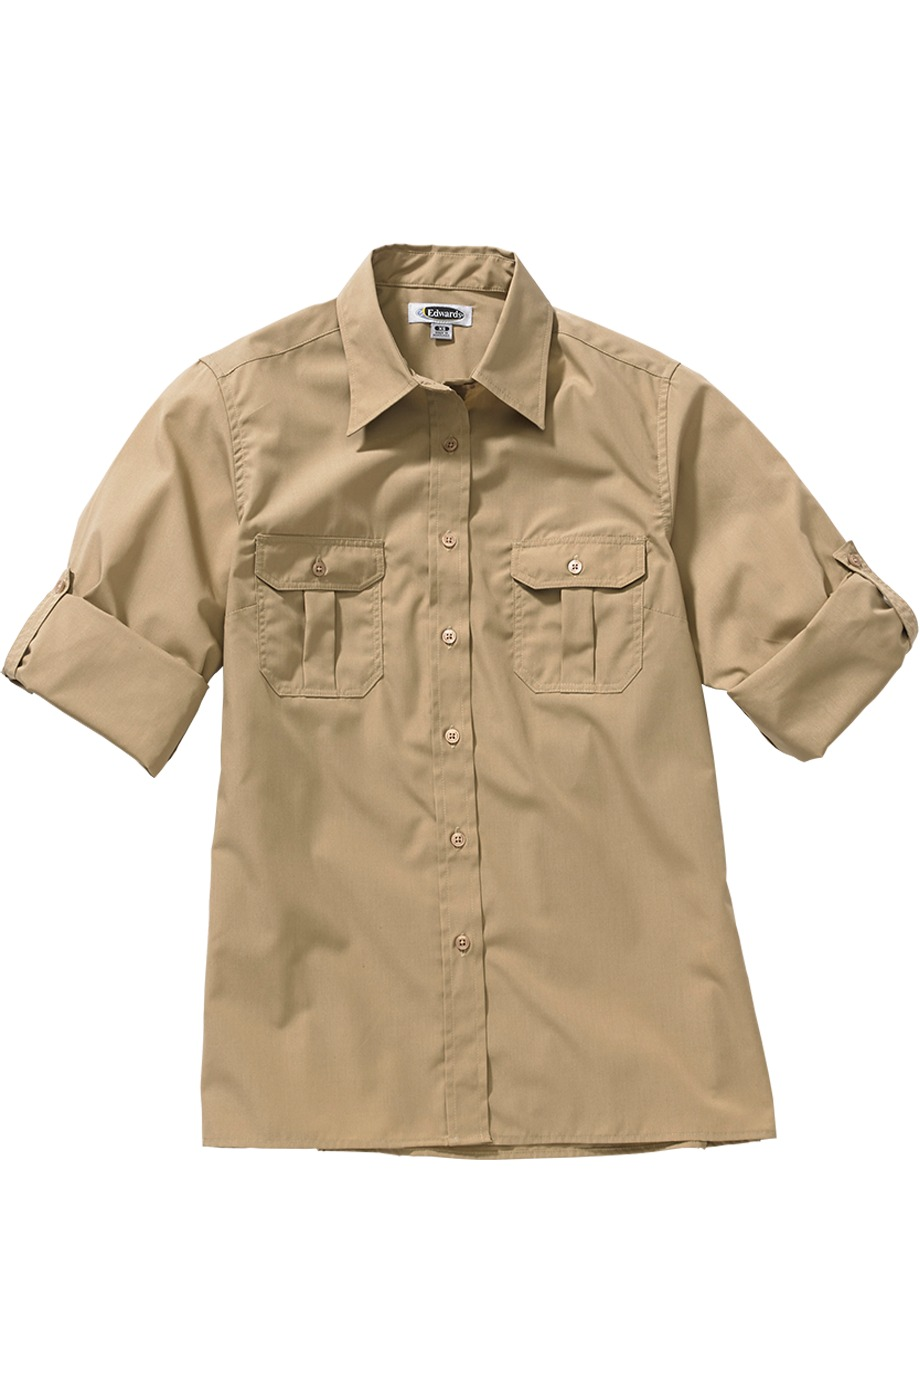 4794125c Edwards Garment 1288 - Roll Up Long Sleeve Shirt $26.40 - Men's ...